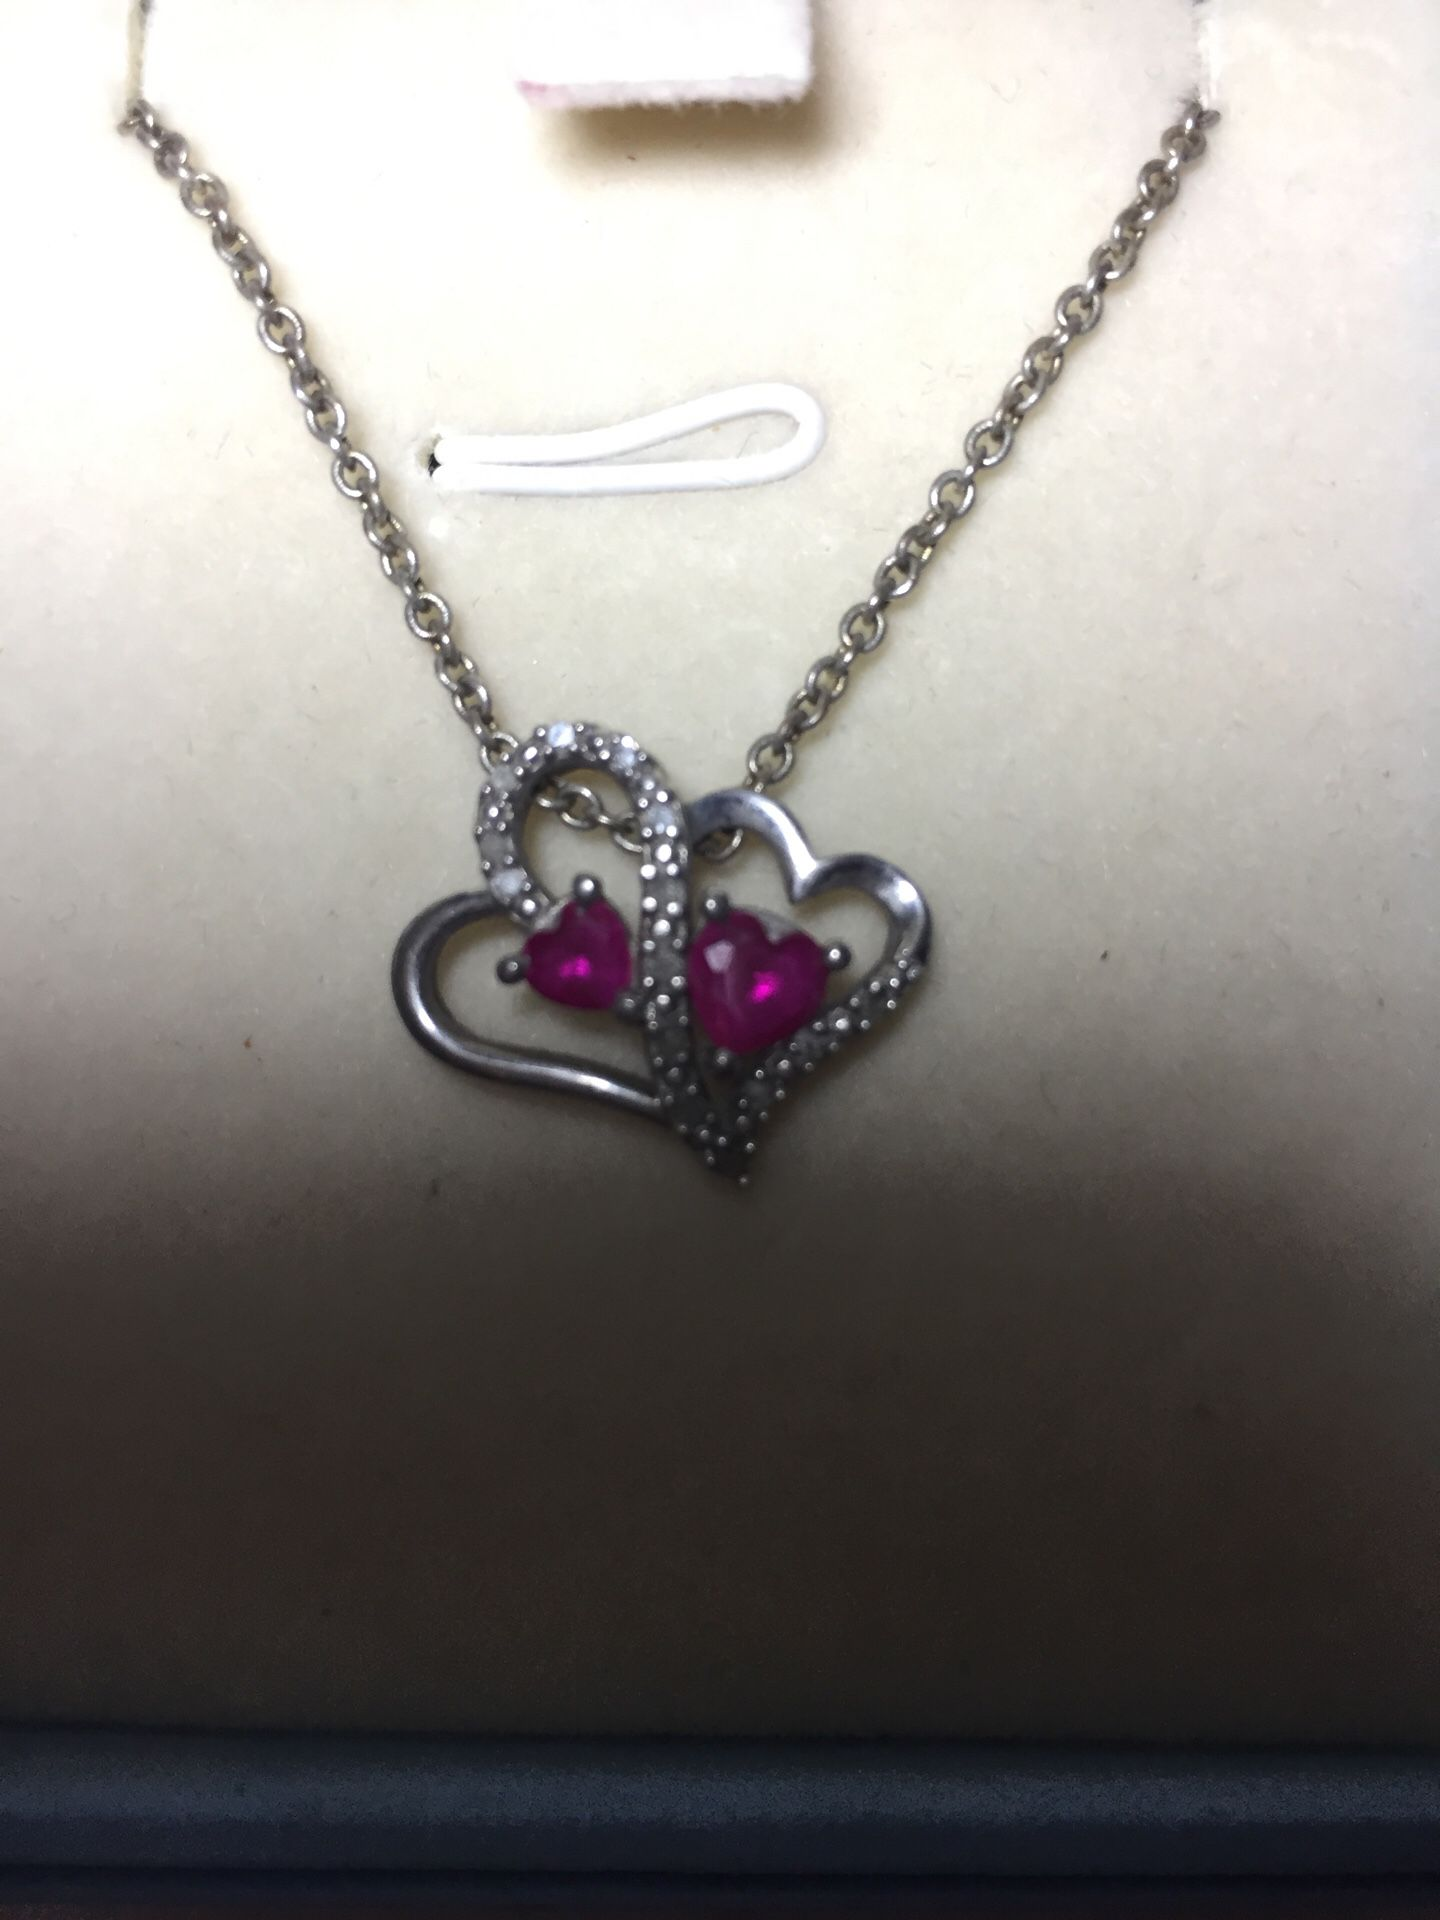 Heart necklace great for valentines